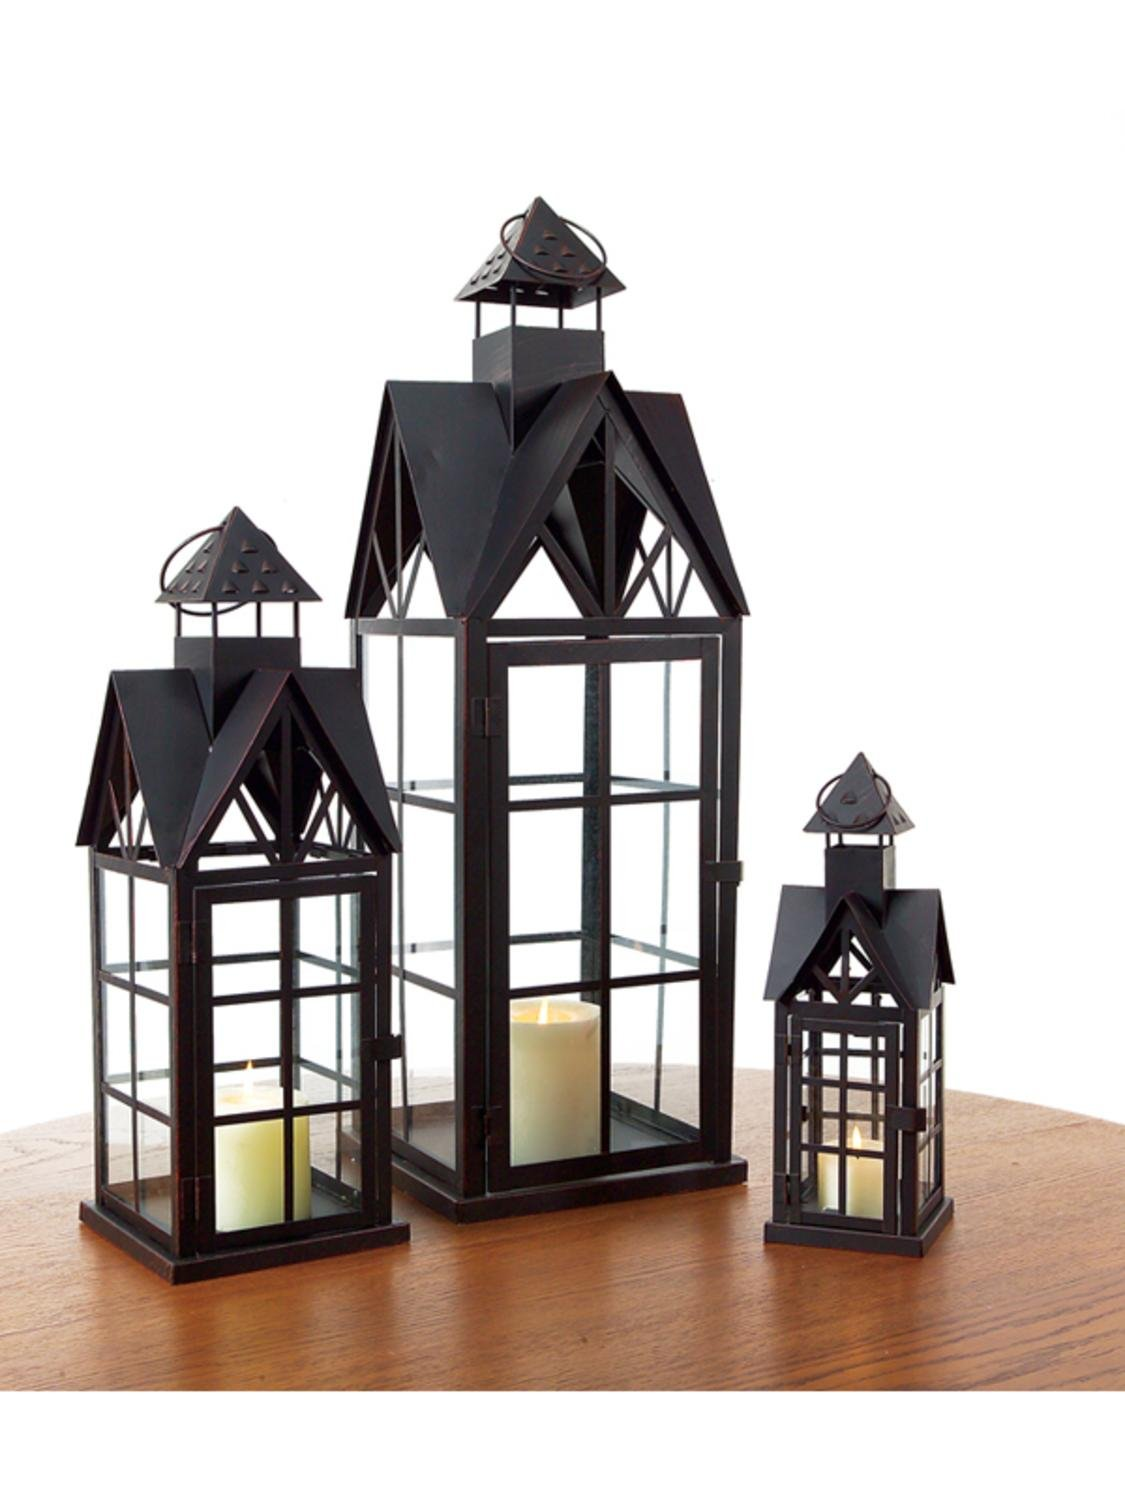 Set of 3 Country Bistro Black Metal House Pillar Candle Lanterns by CC Home Furnishings